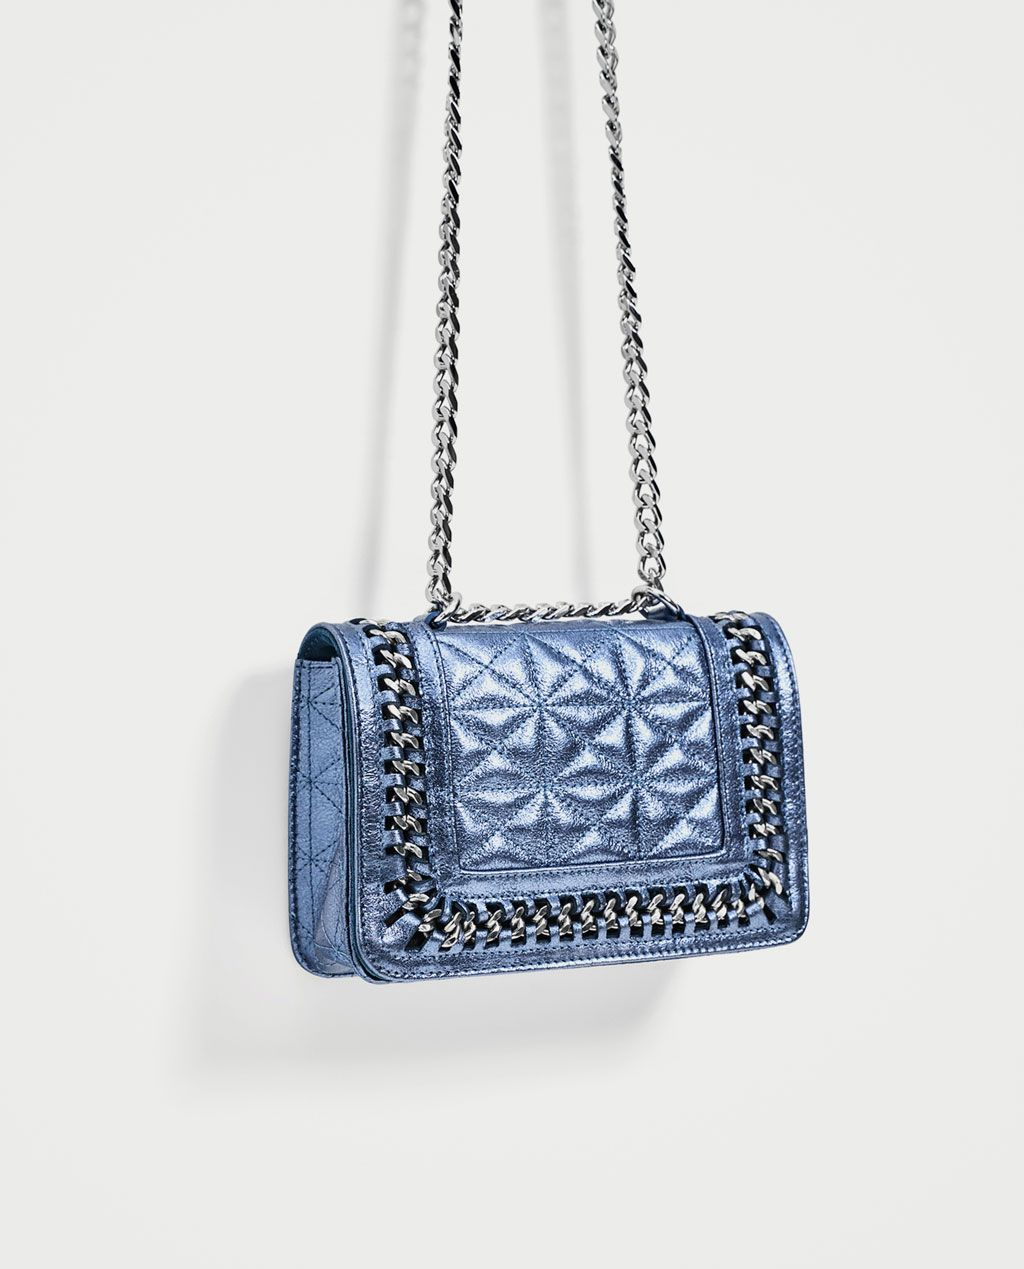 d14b606fb97 Image 1 of QUILTED LEATHER MINI CROSSBODY BAG from Zara   Love The ...